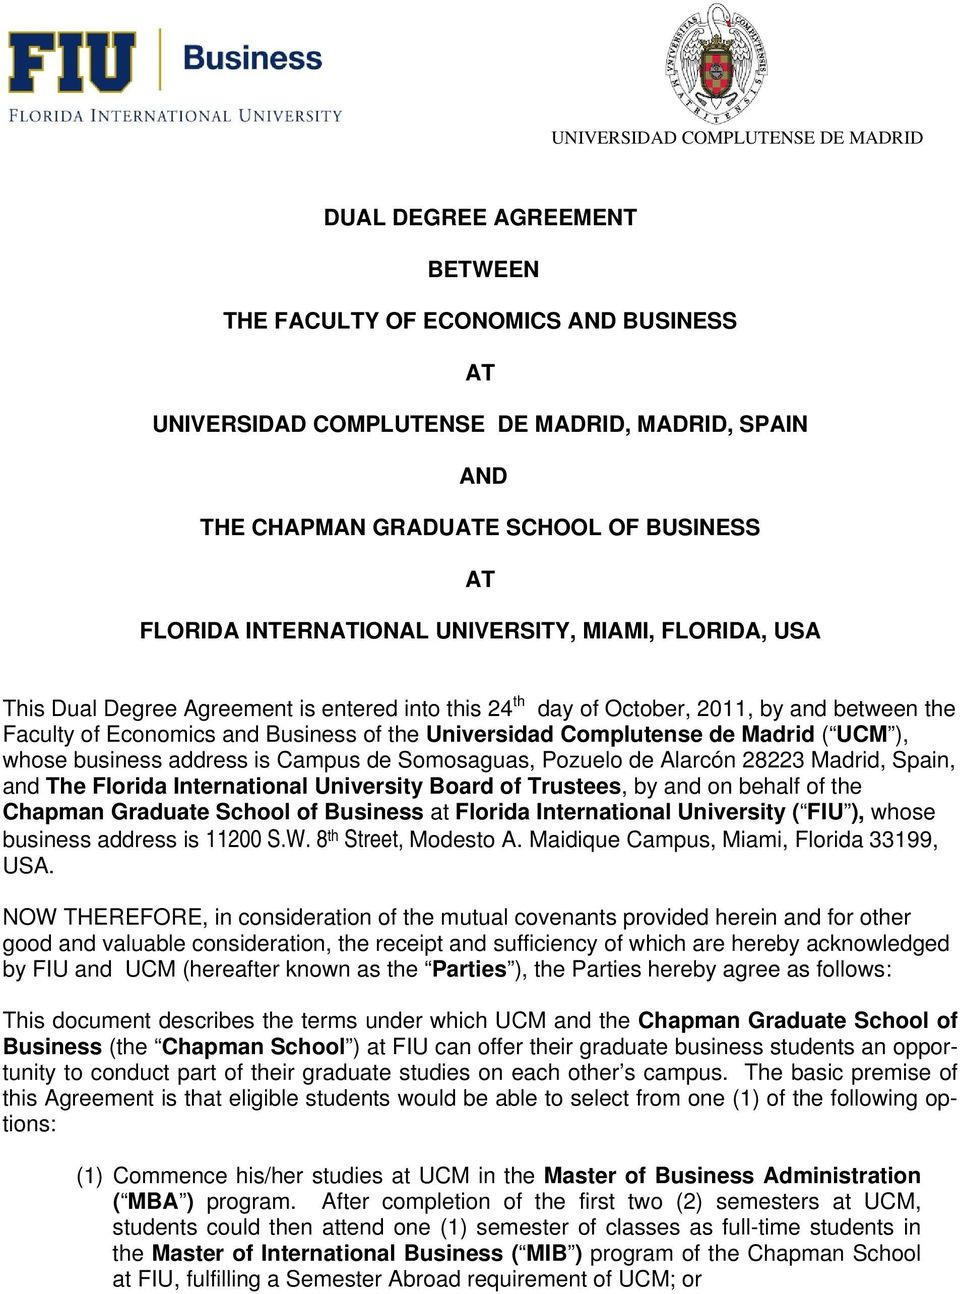 Universidad Complutense de Madrid ( UCM ), whose business address is Campus de Somosaguas, Pozuelo de Alarcón 28223 Madrid, Spain, and The Florida International University Board of Trustees, by and